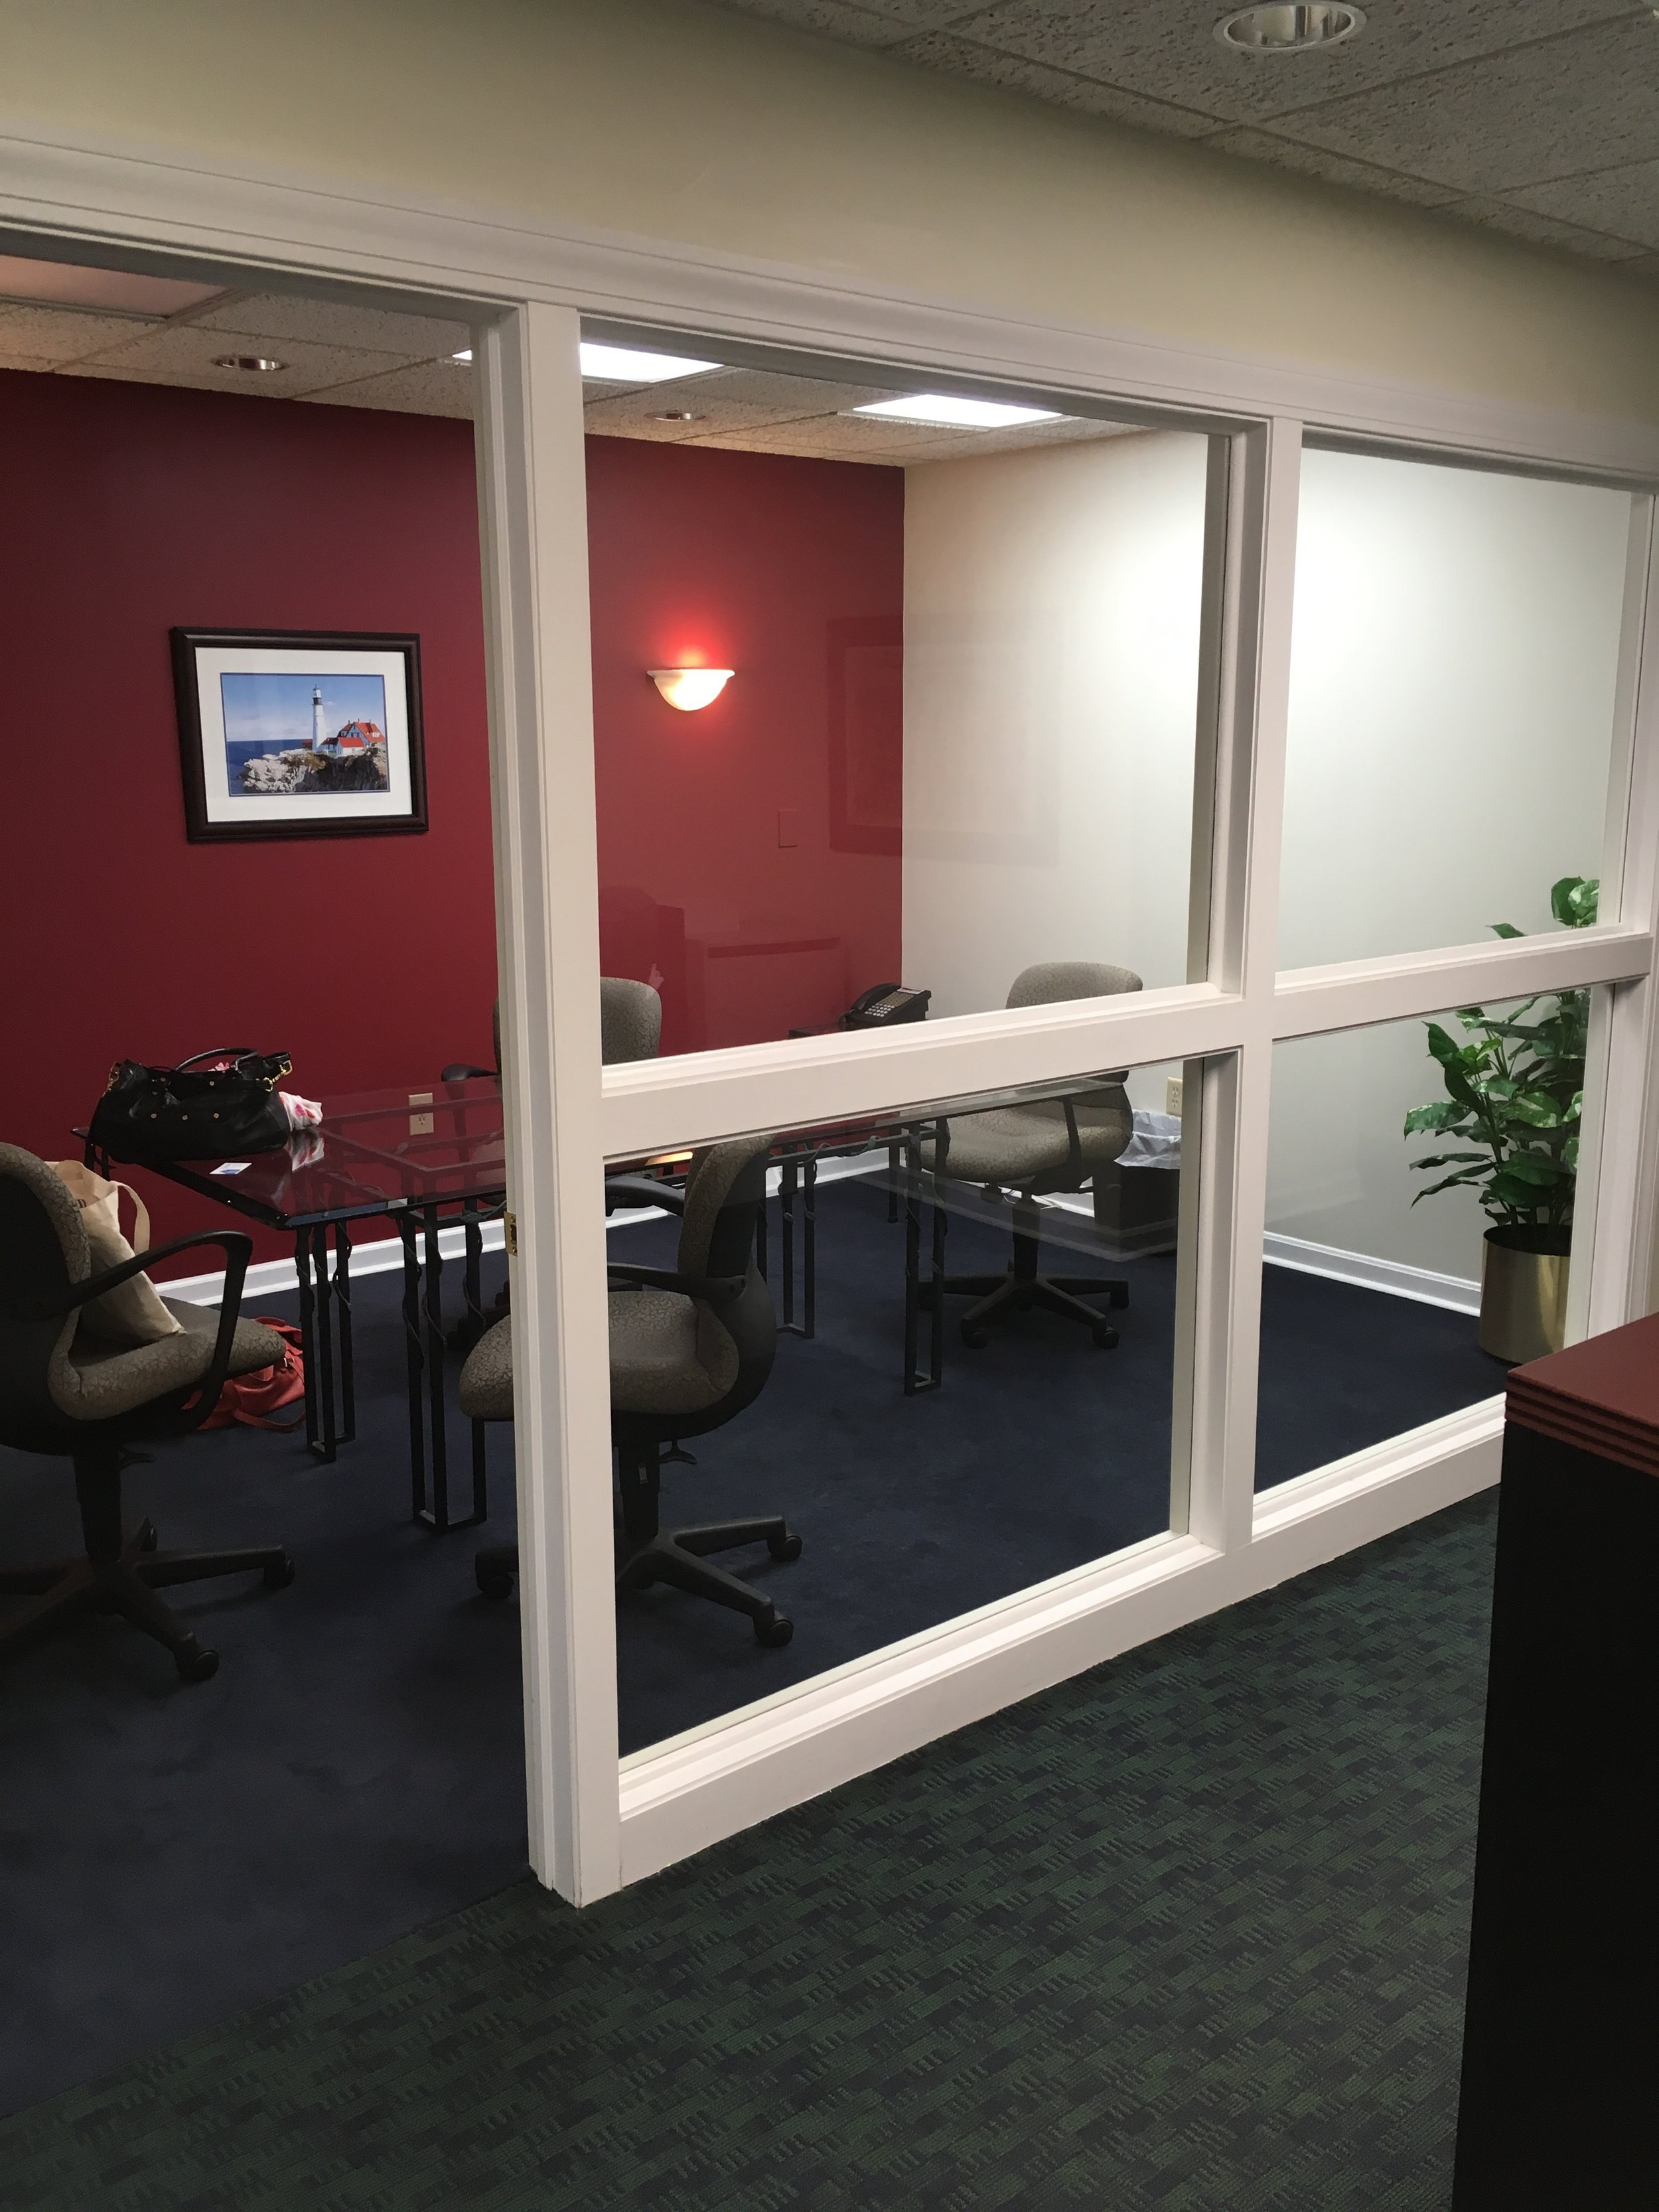 BEFORE: view into the conference room.